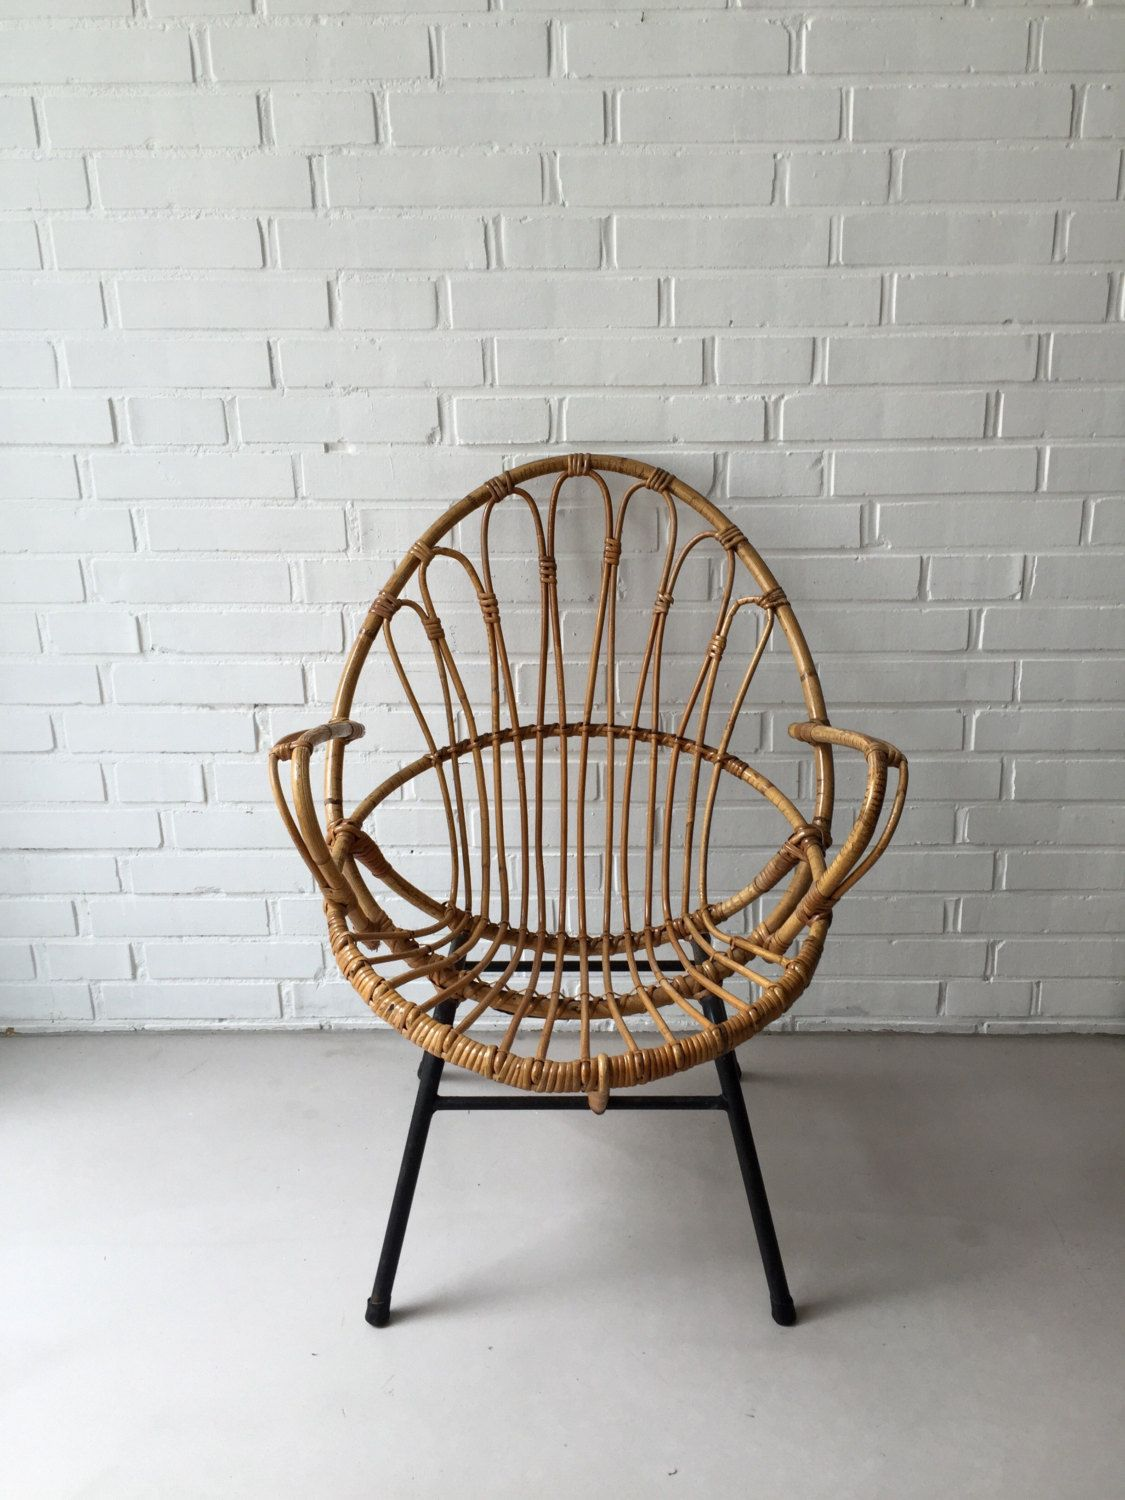 Korbstuhl Garten Vintage Rattan Chair Wicker Chair Bamboo Chairs Vintage